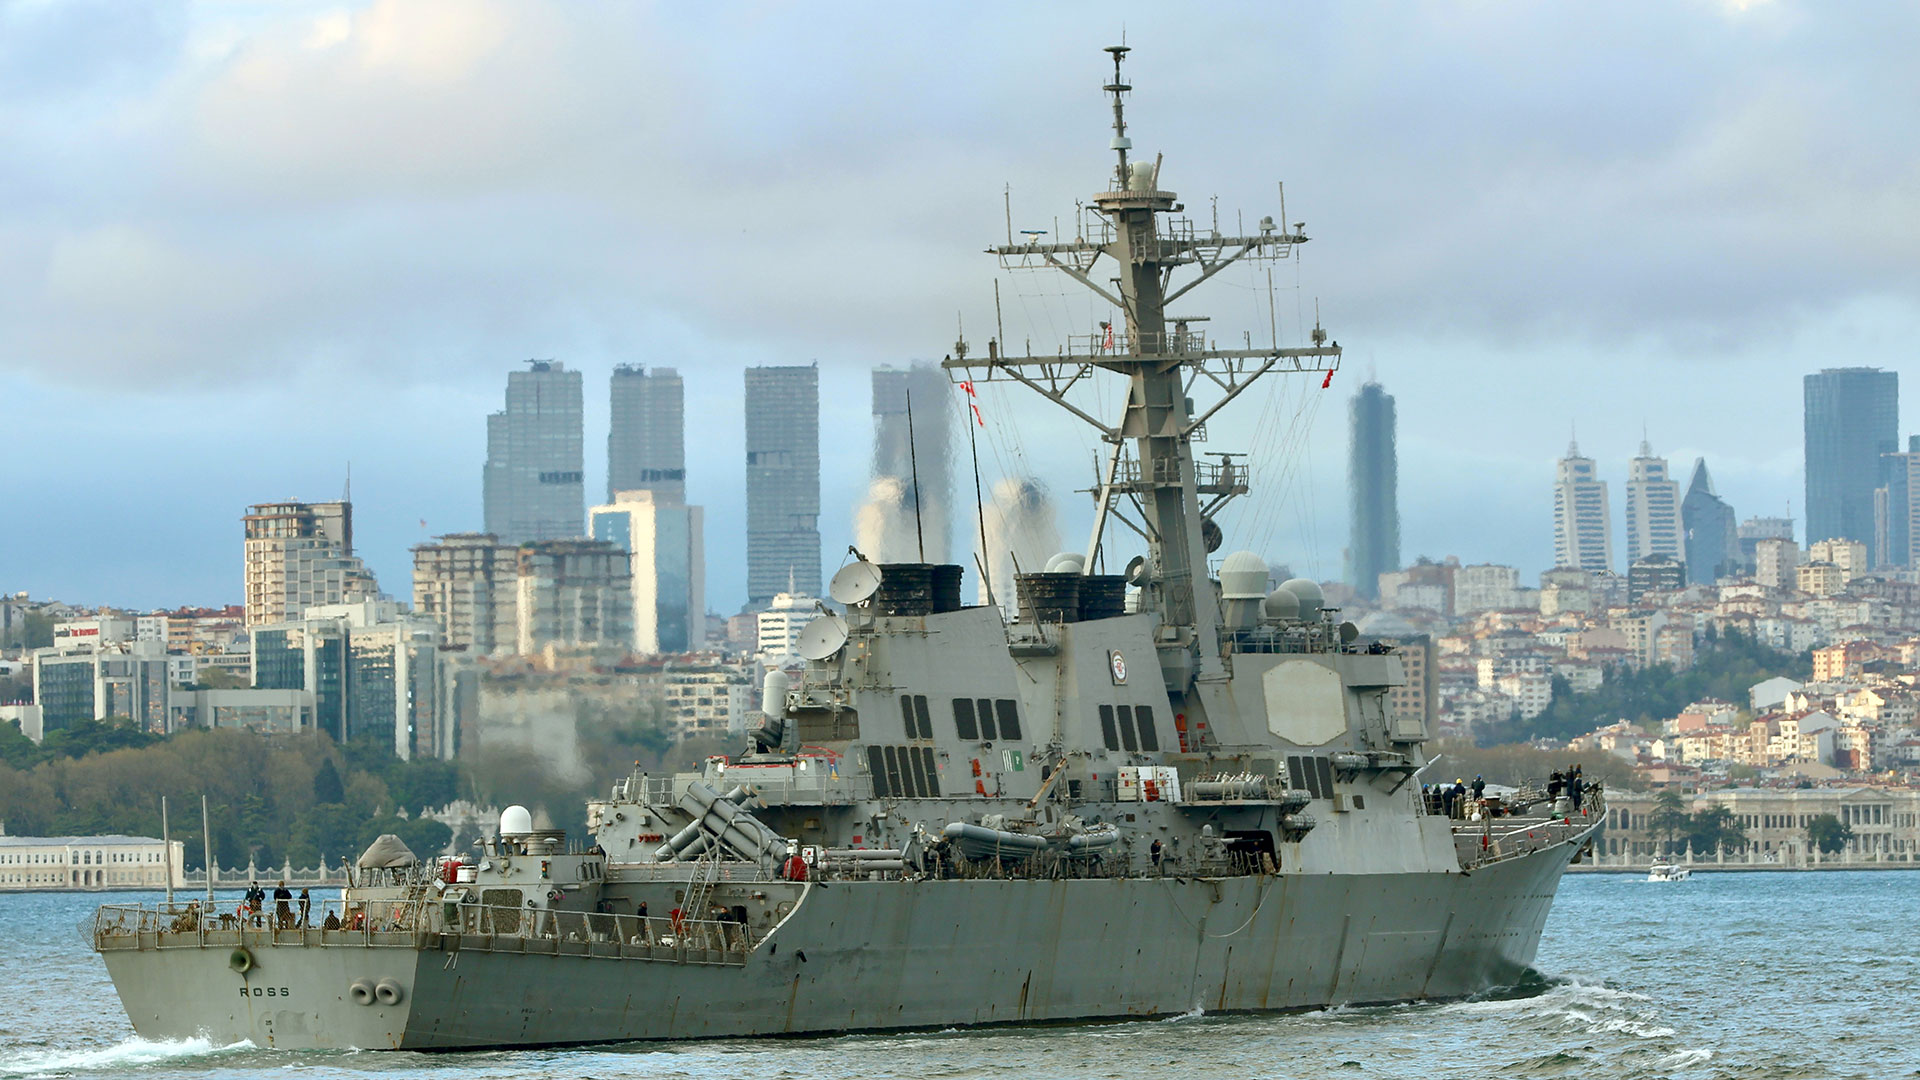 Russian Ships Keep A Close Eye on the Actions of the US Warship